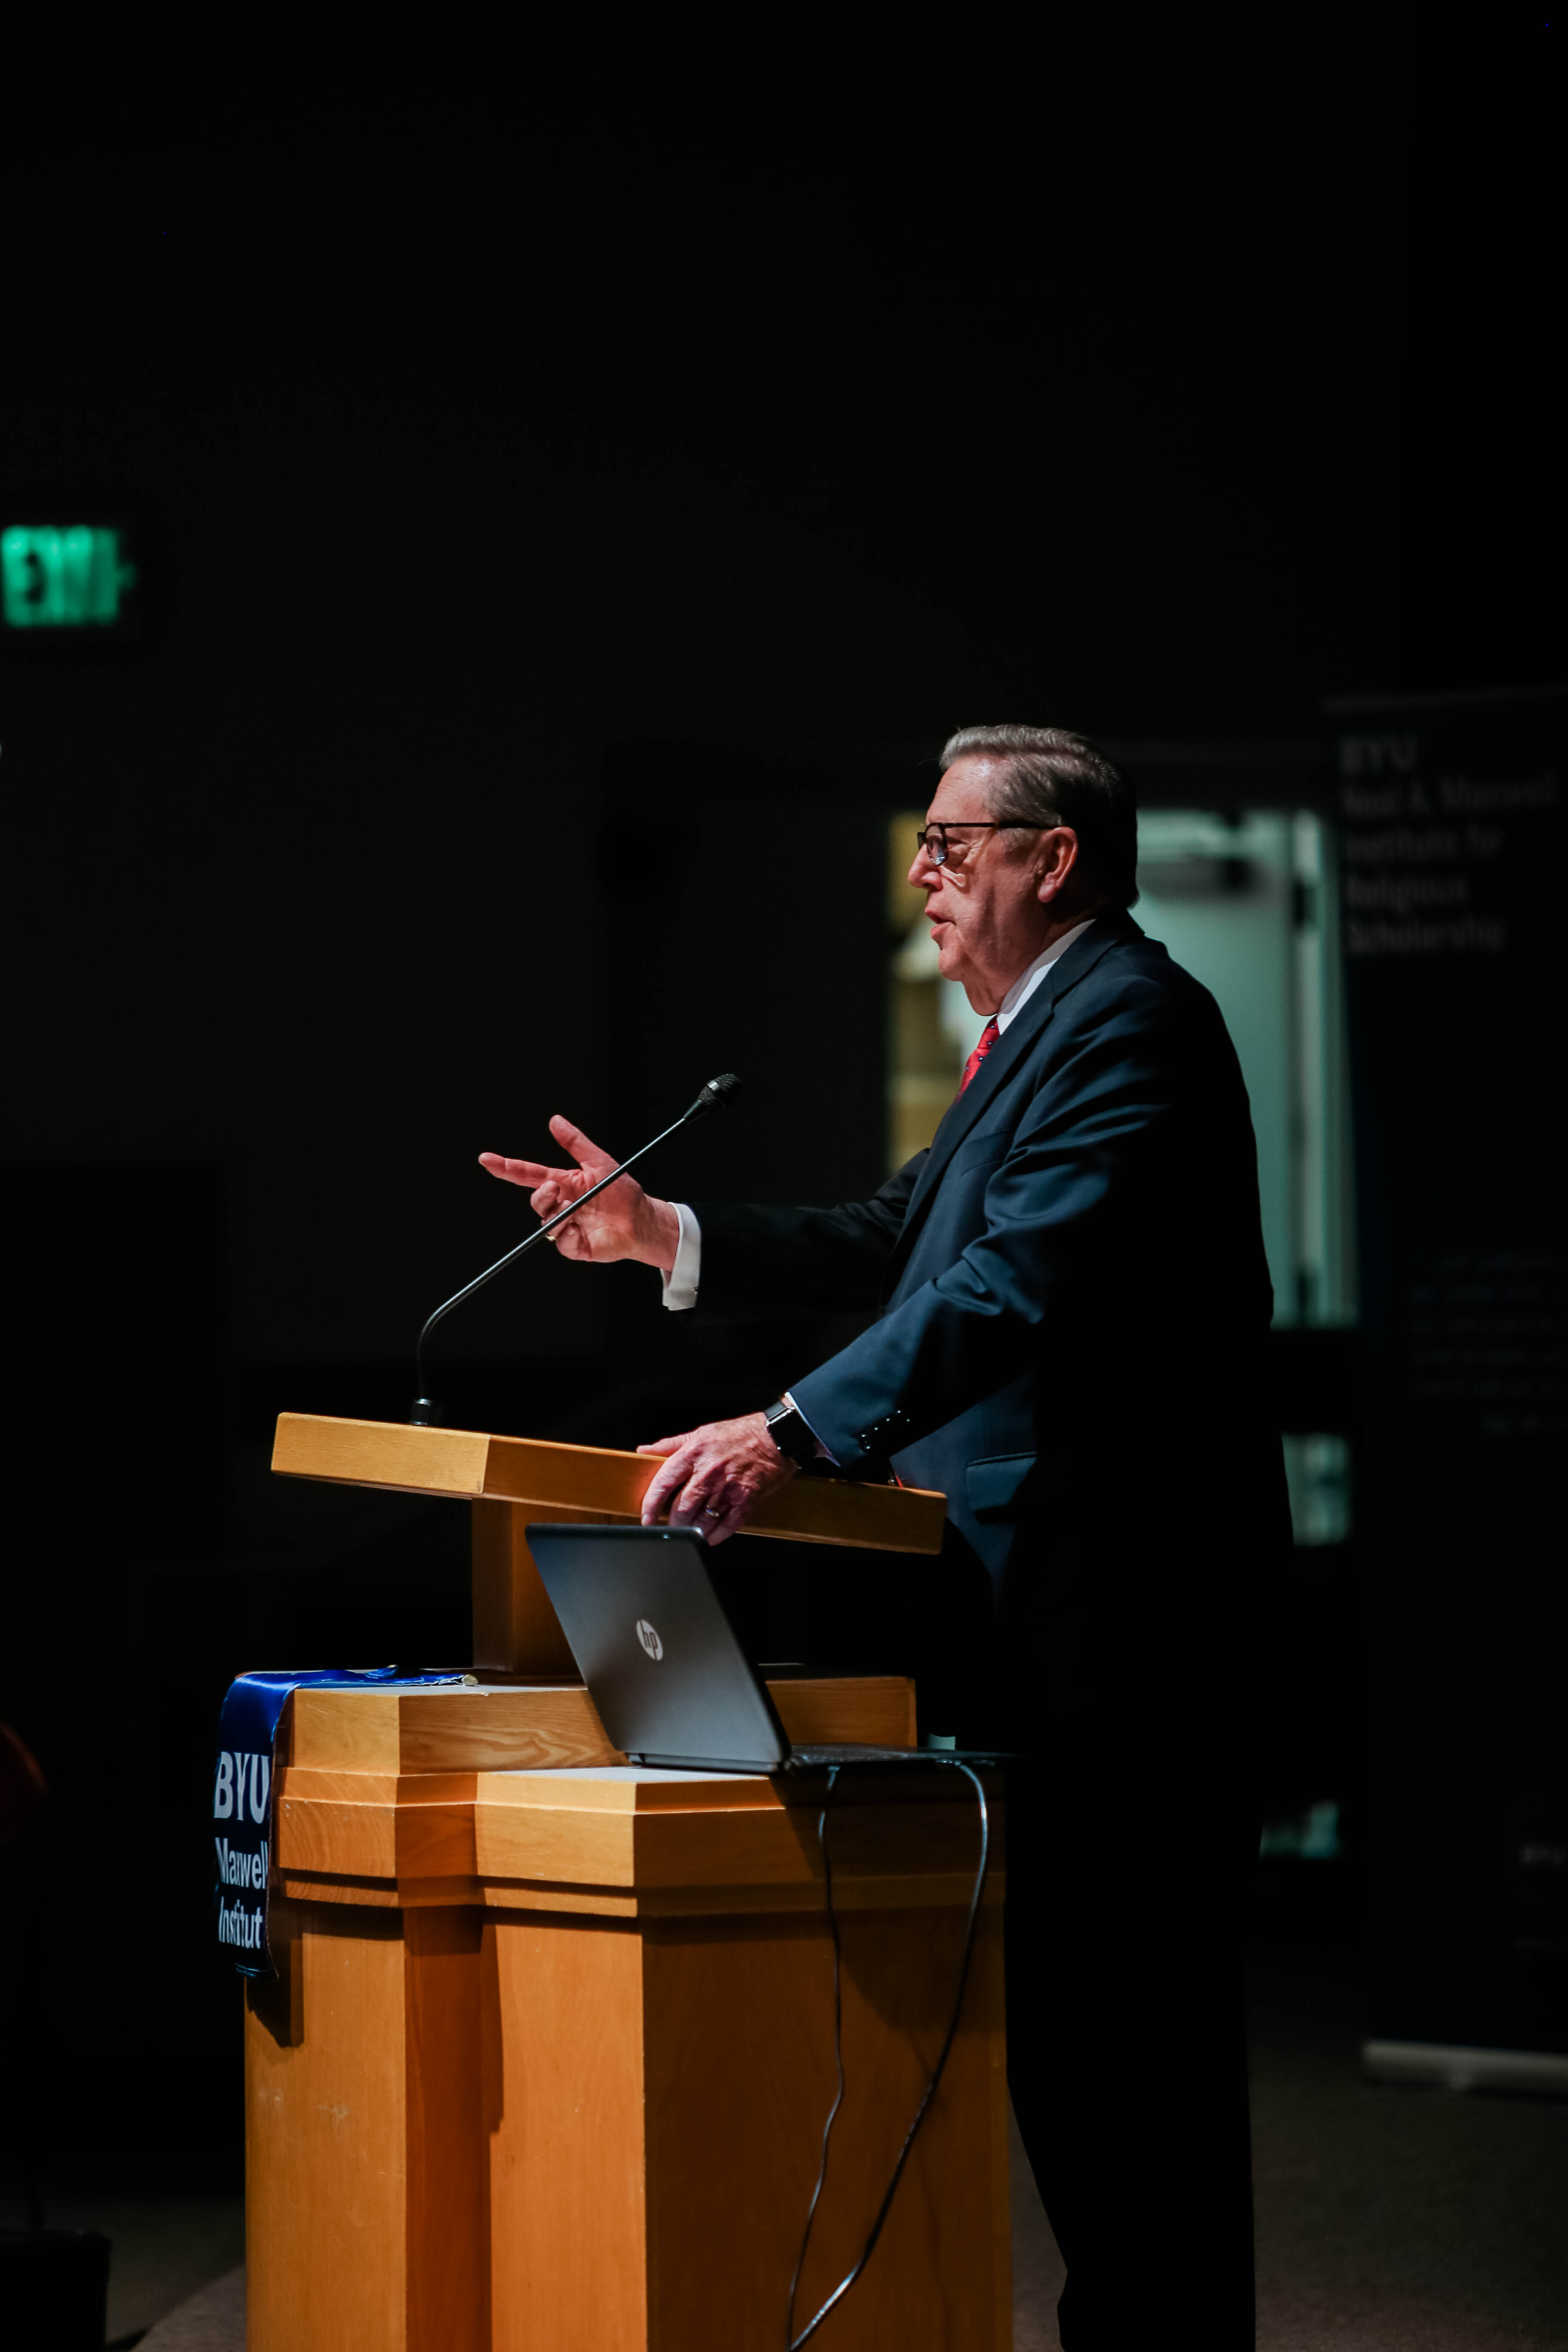 Elder Jeffrey R. Holland of the Quorum of the Twelve Apostles speaks during the annual Neal A. Maxwell Lecture held at BYU, this year on Nov. 10.